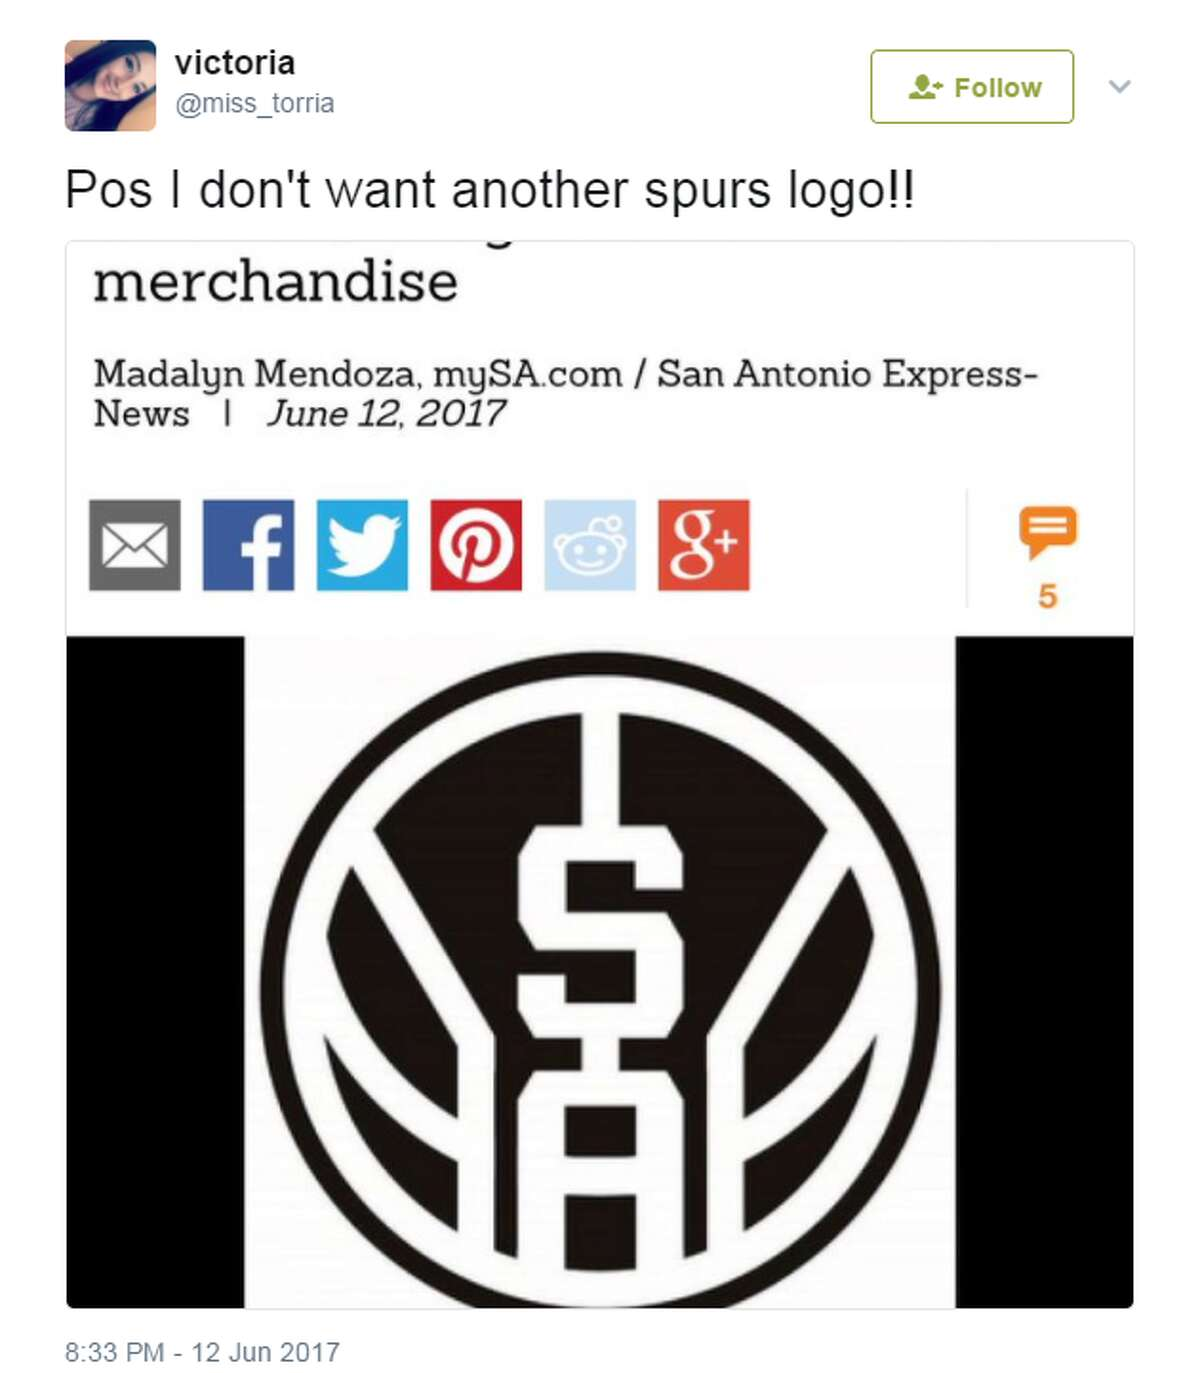 @miss_torria: Pos I don't want another spurs logo!!